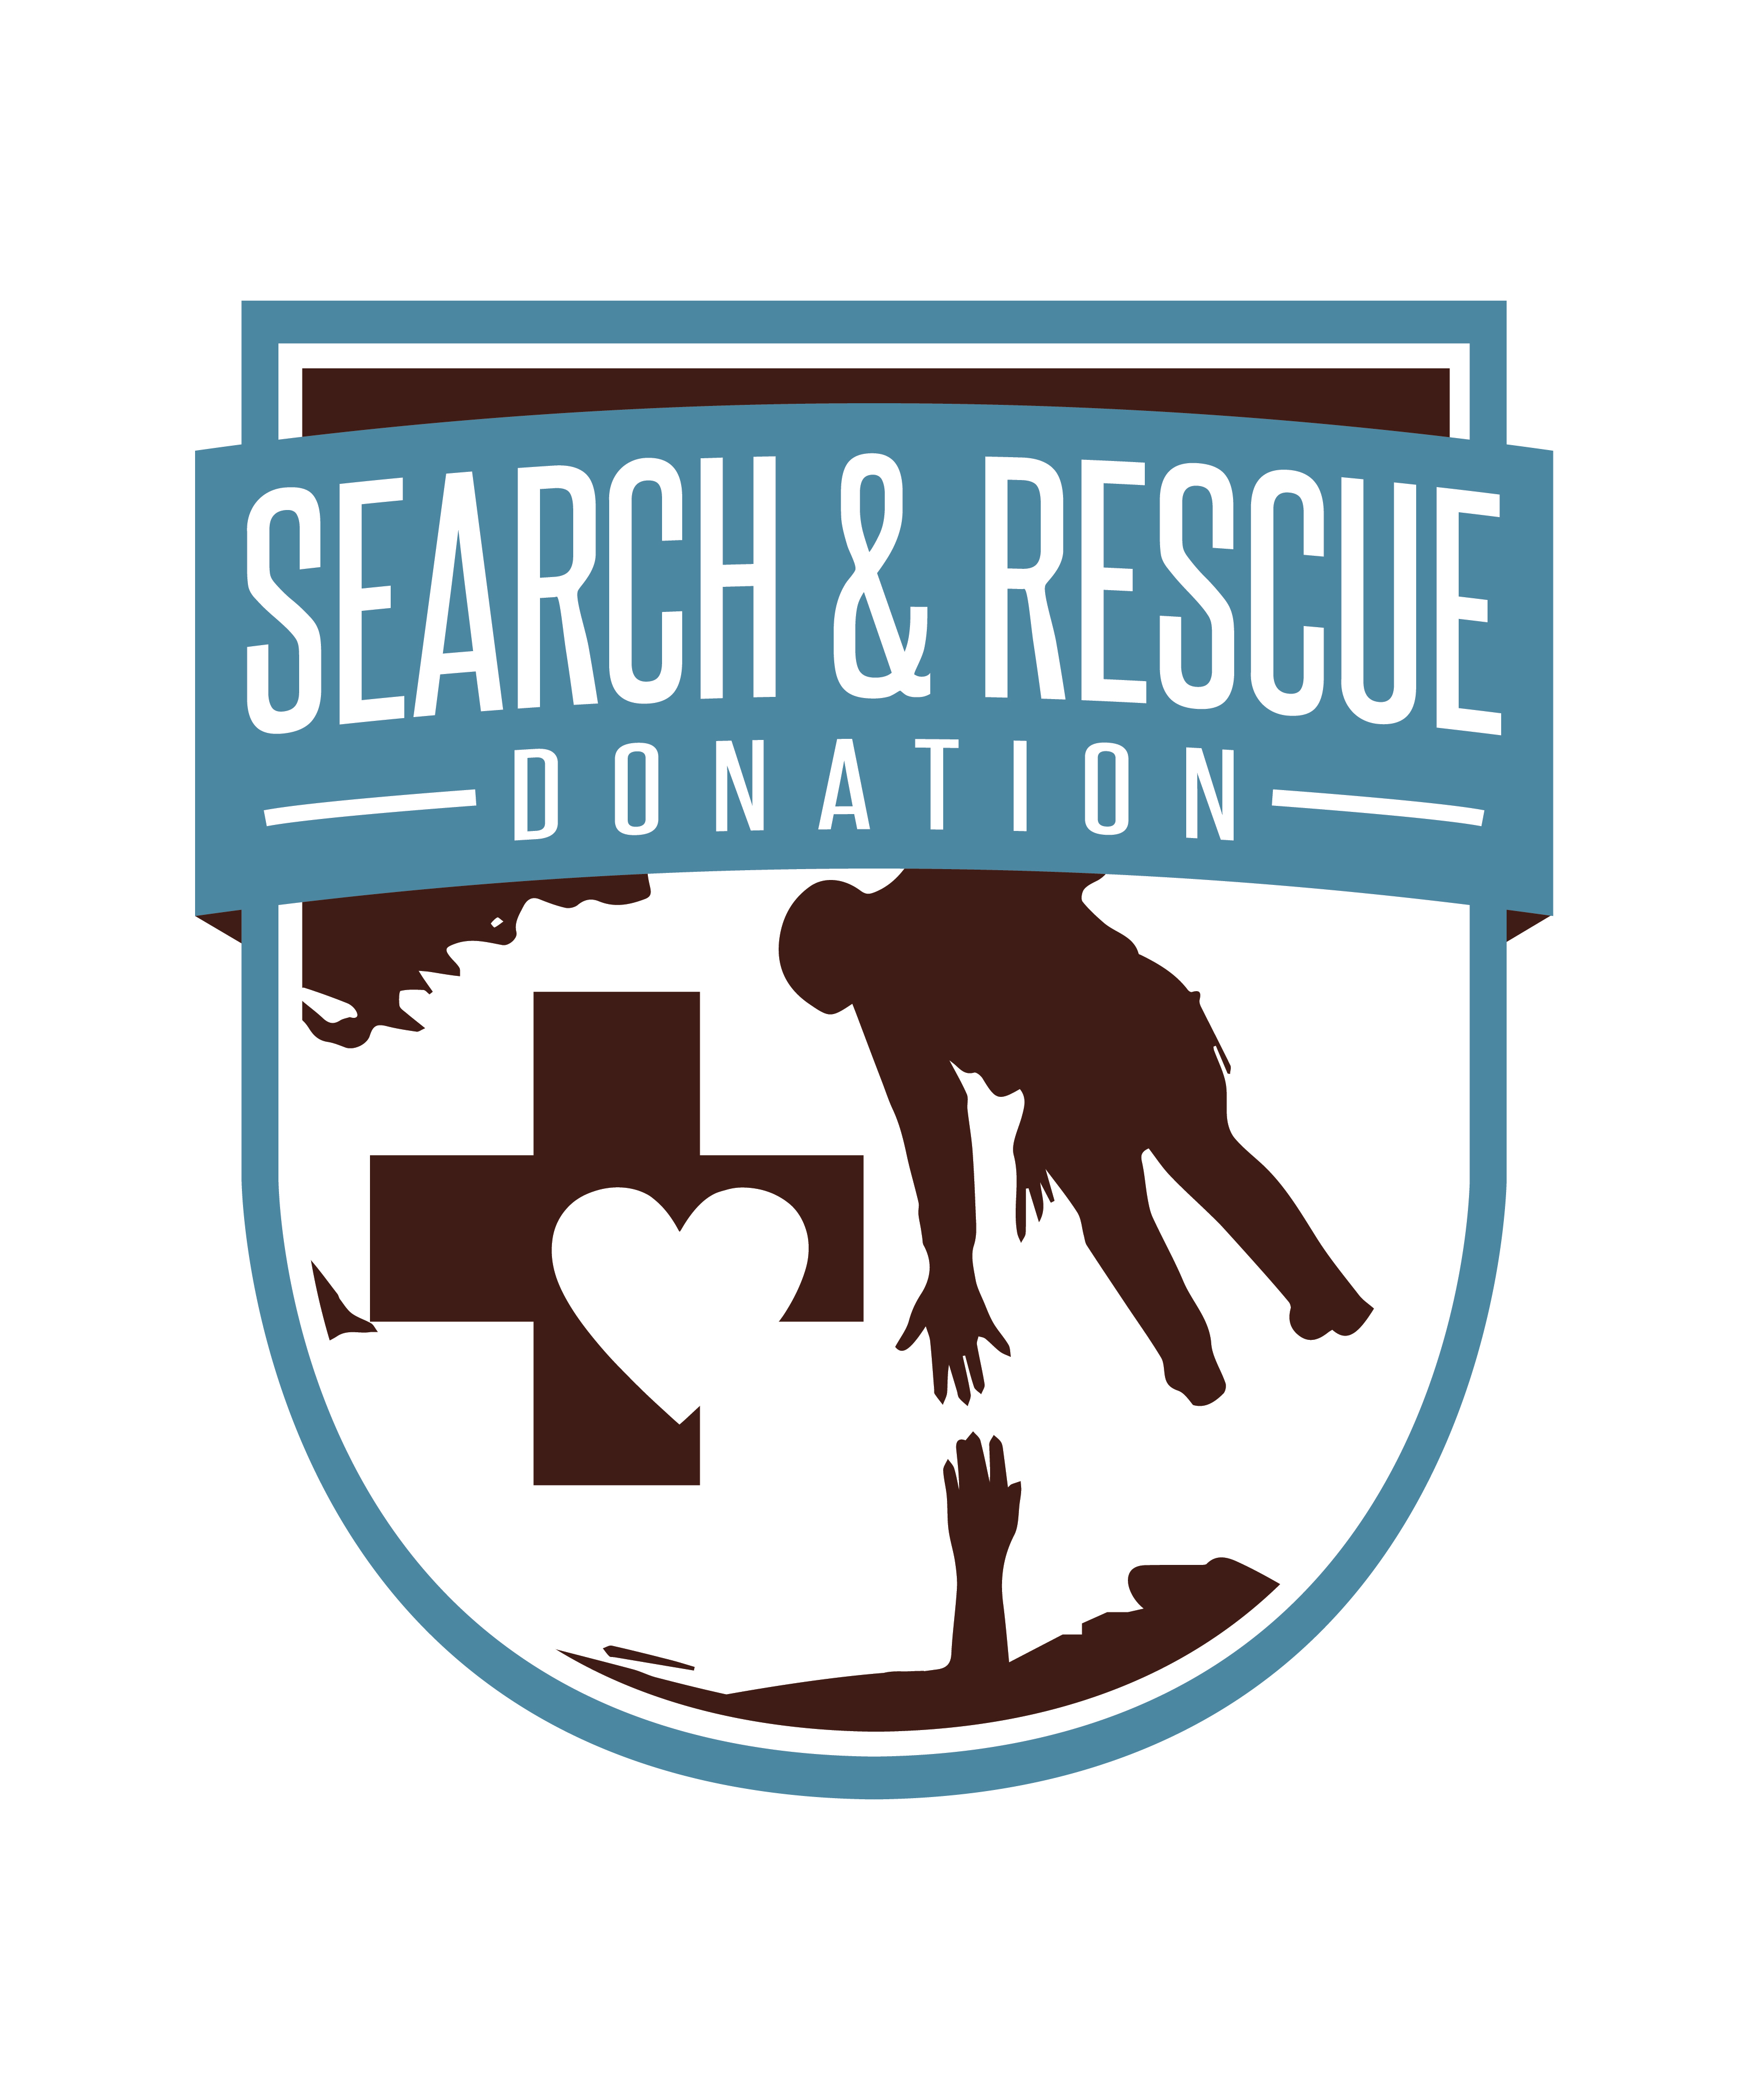 Search & Rescue Optional Donation